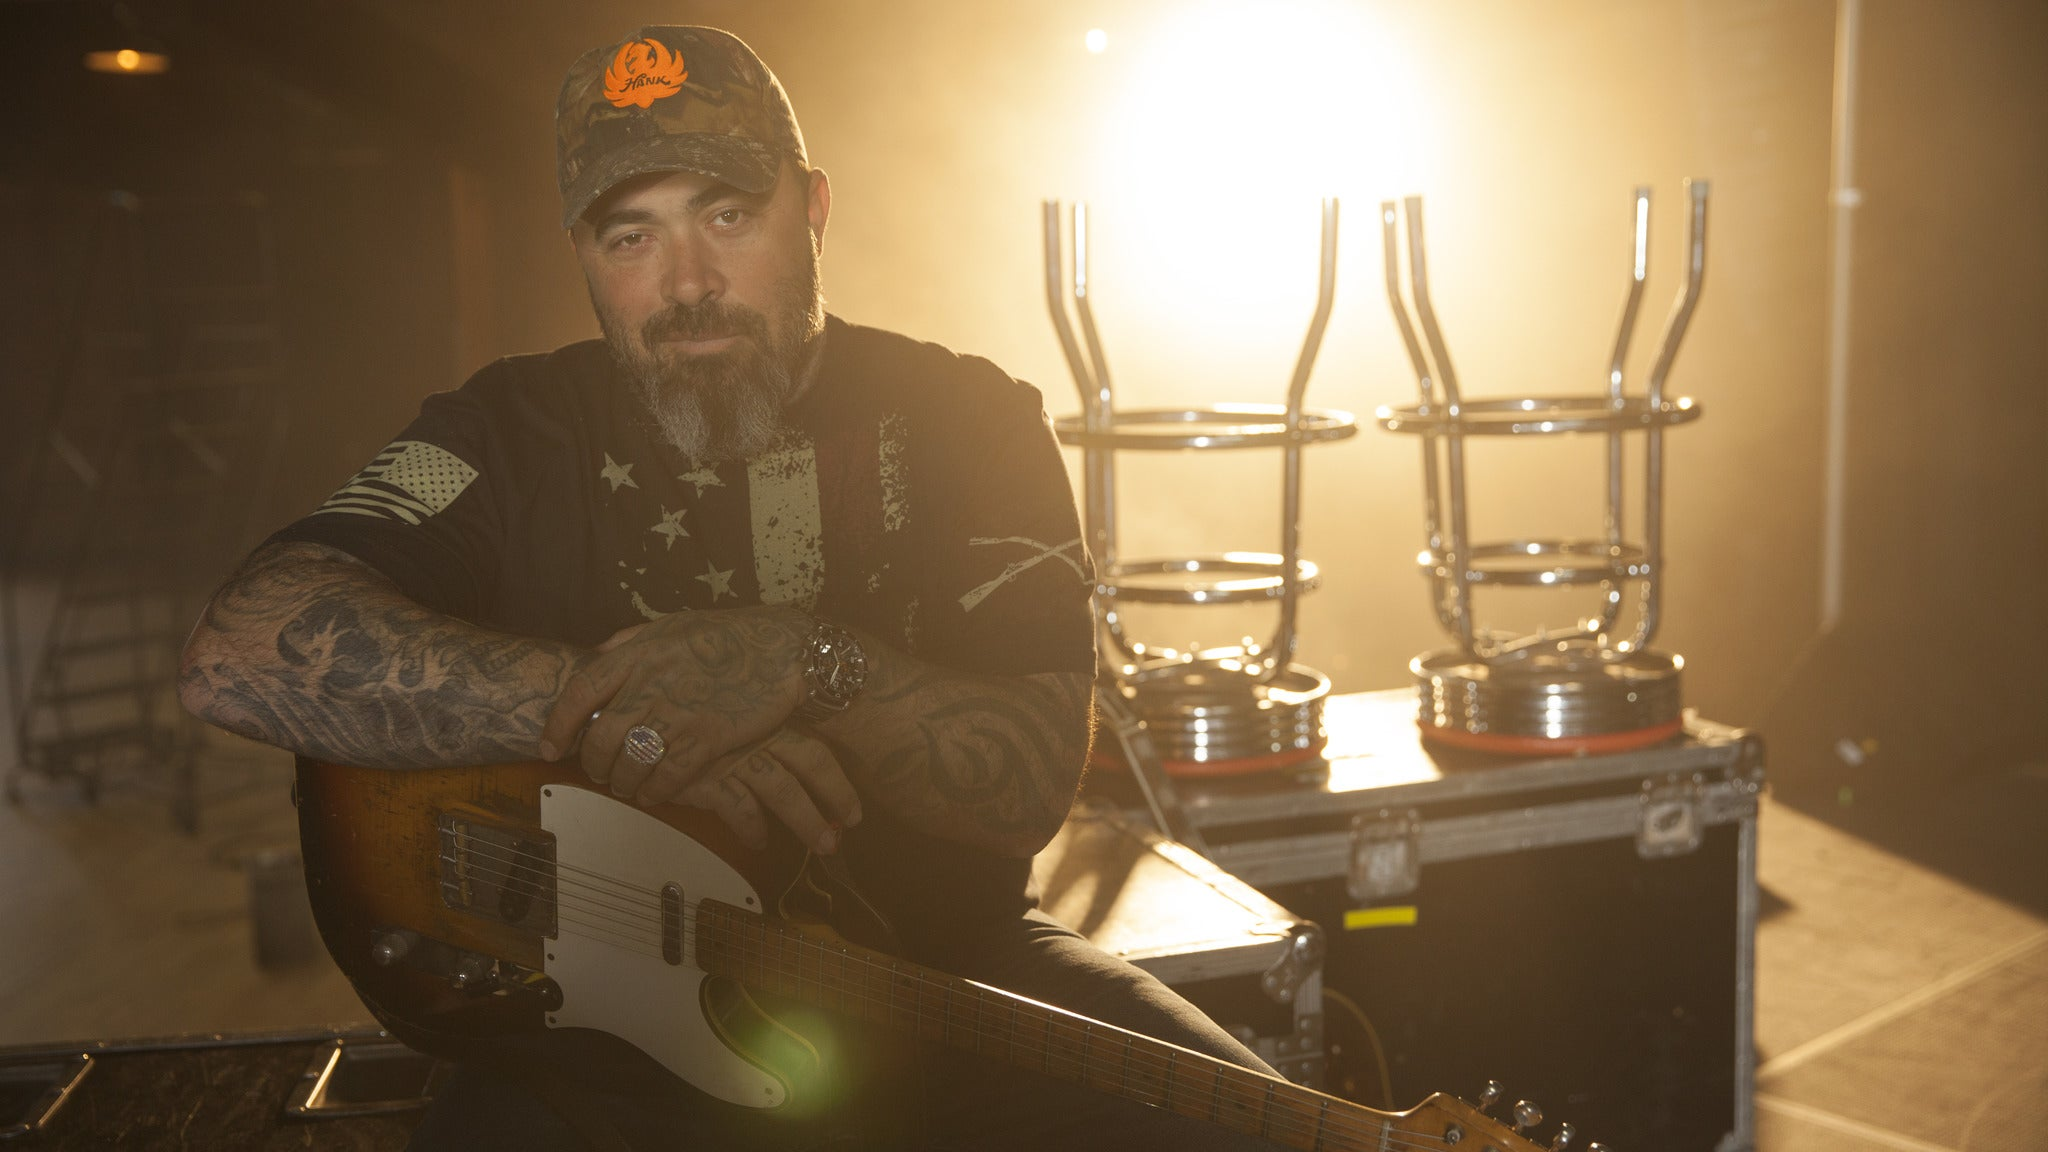 Aaron Lewis, The Sinner Tour at The Ritz